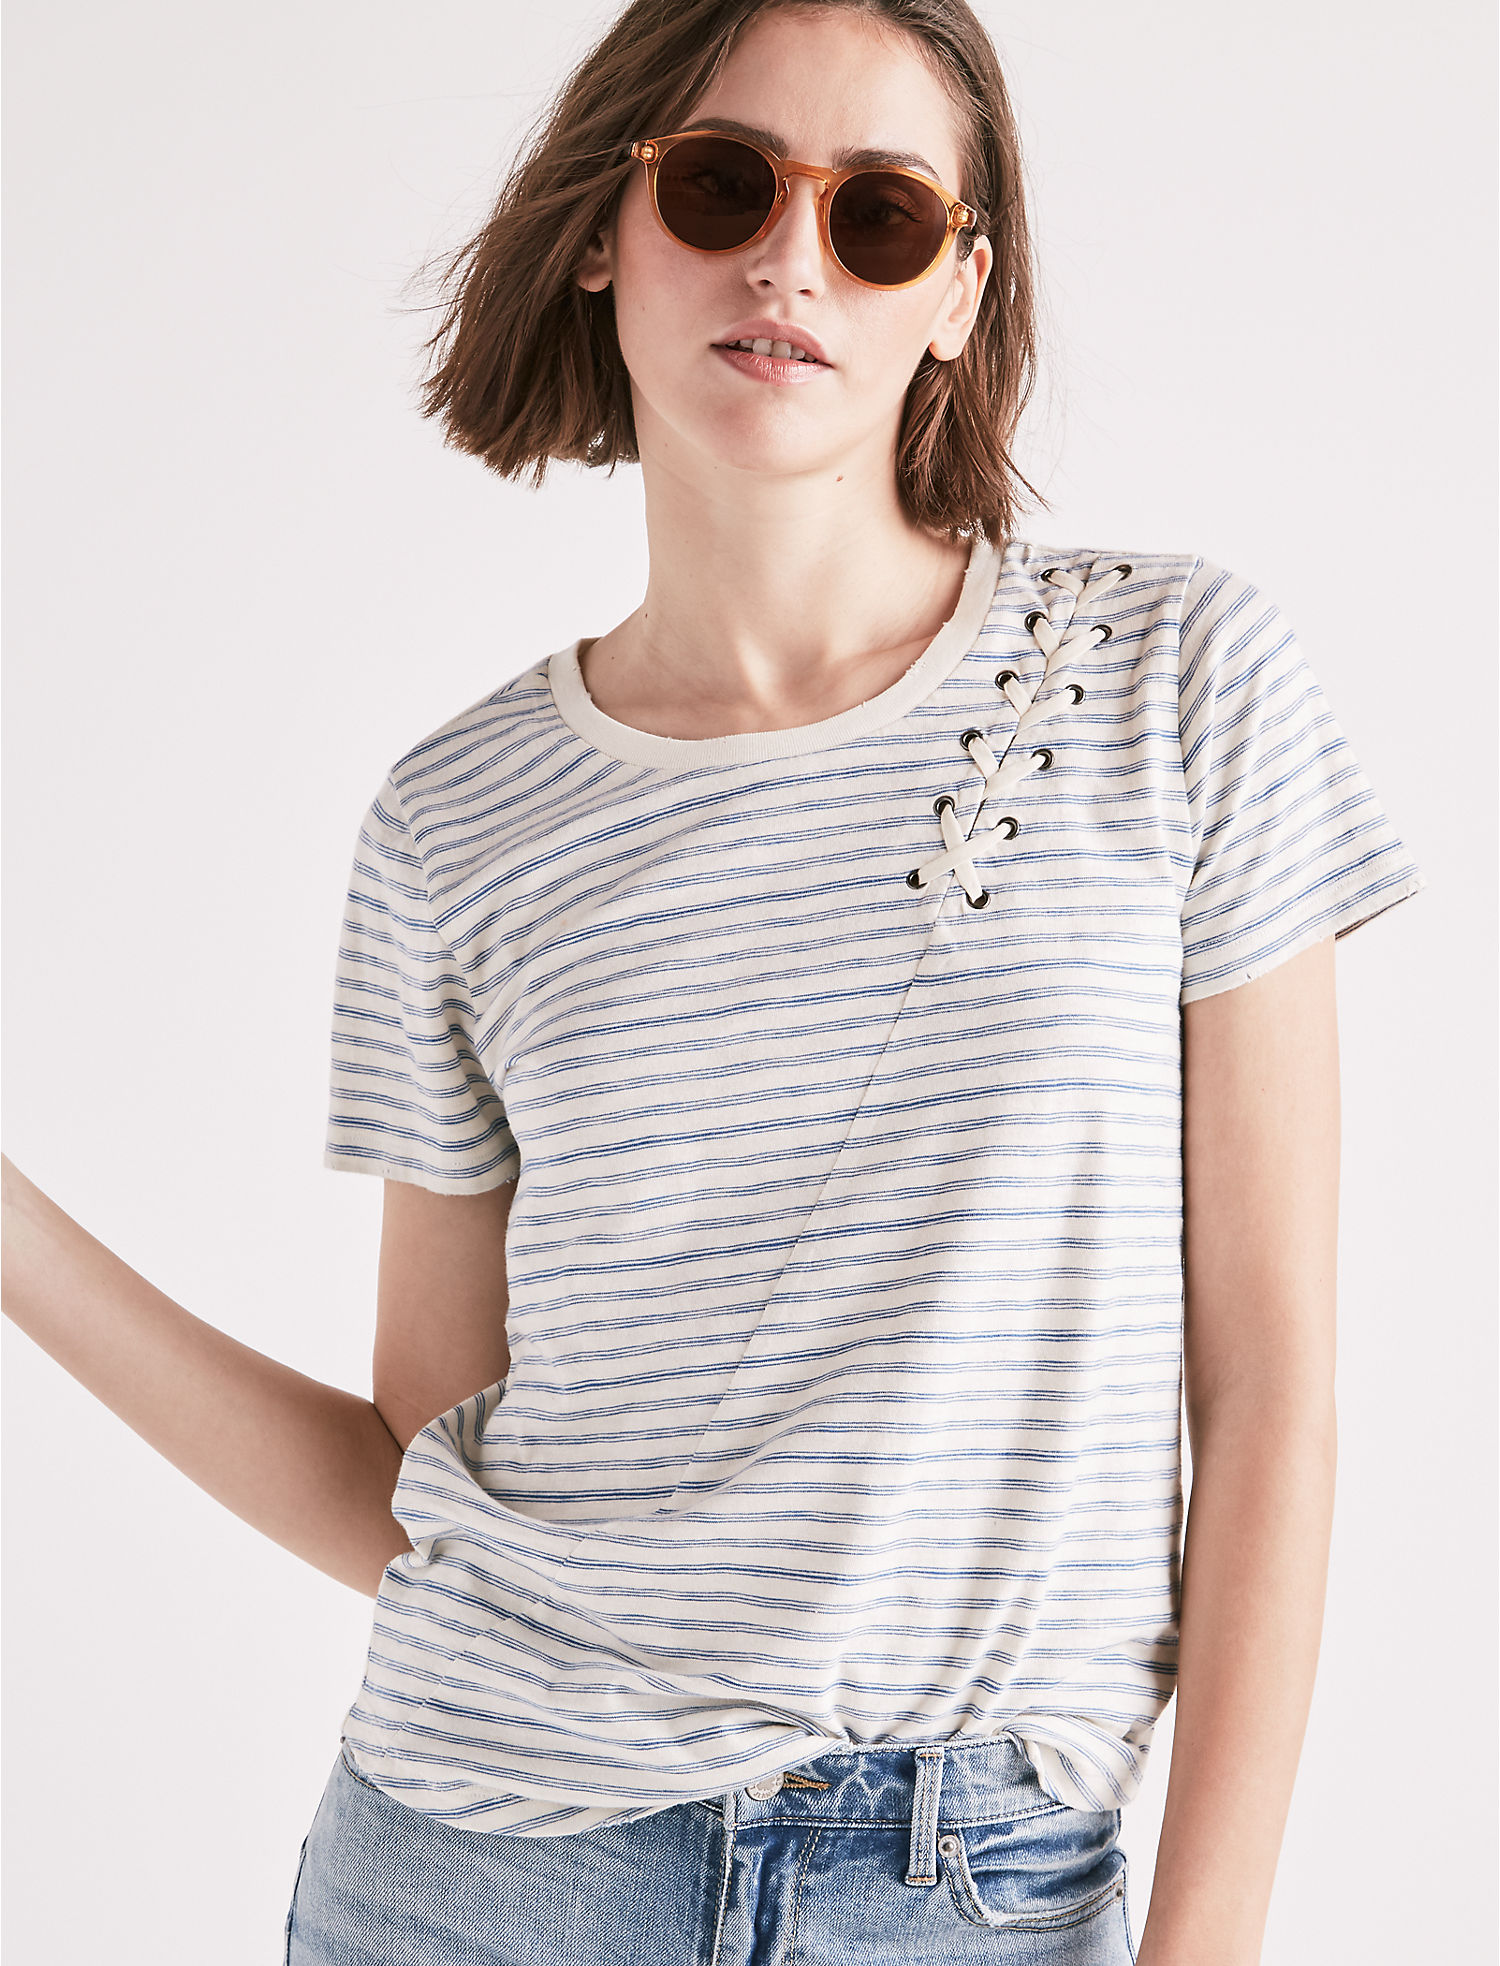 Many Kinds Of Cheap Online Cheap Discount Stripe Lace Up Shoulder Lucky Brand Browse Cheap Price Aberdeen ICm9mG91U3